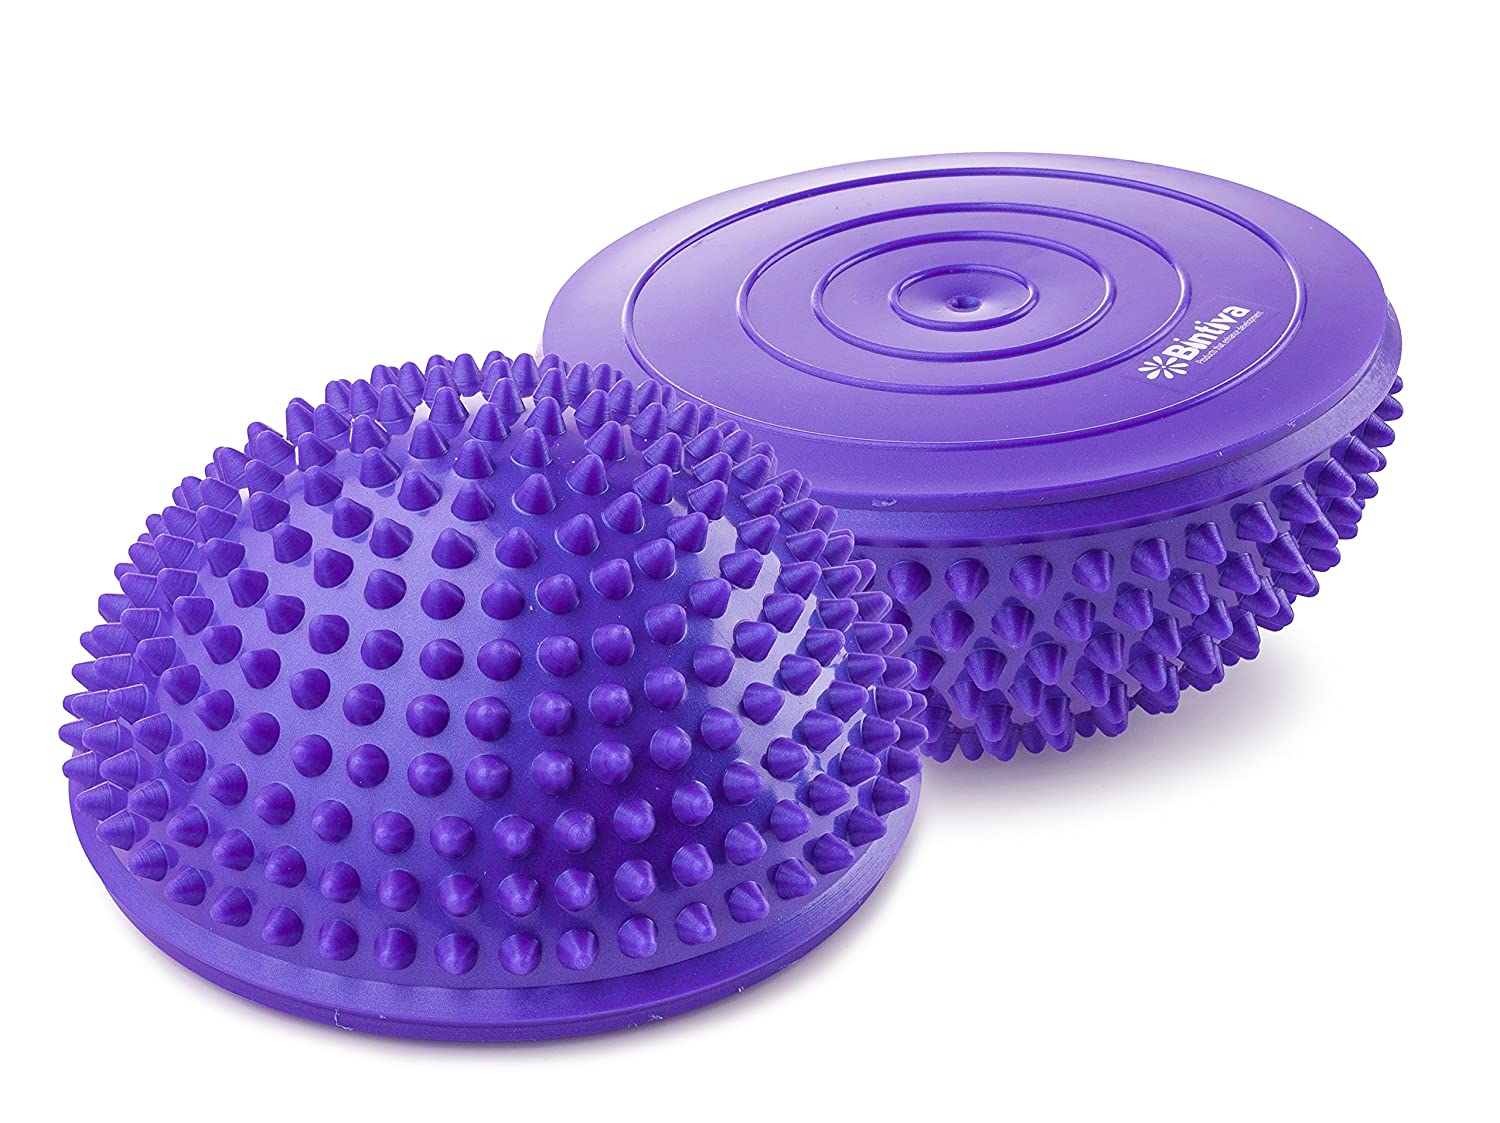 bintiva Balance Pods Set – 1 Pair Hedgehog Style Domed Stability Pods for Children and Adults